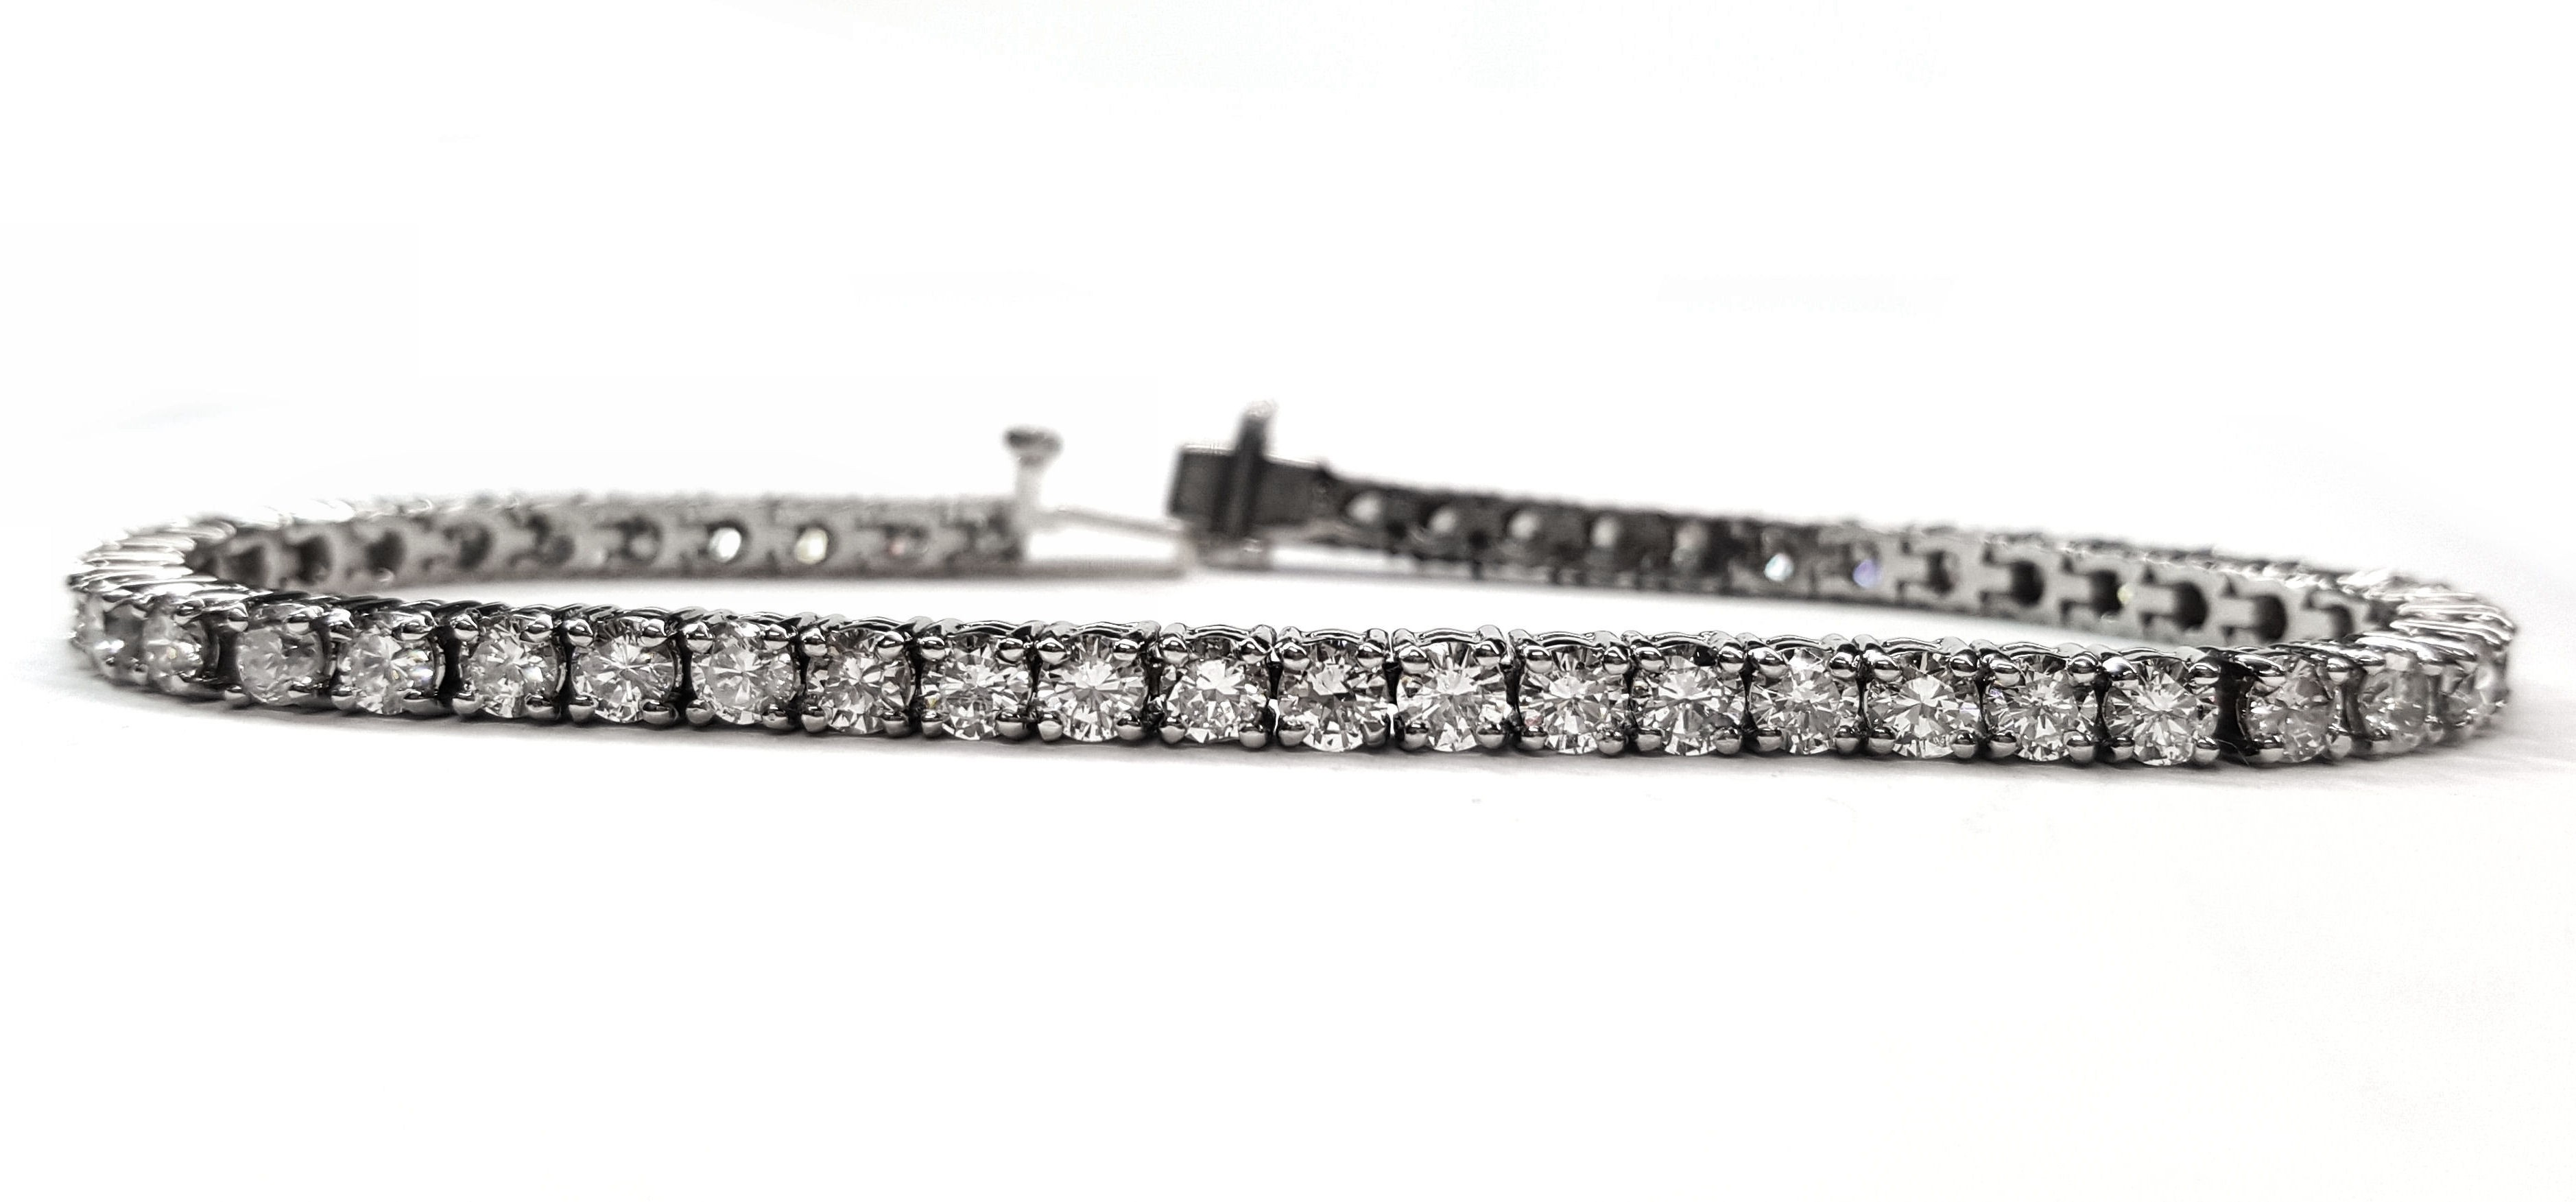 Diamond tennis bracelet 6.24cts. 4 prong White Gold Setting